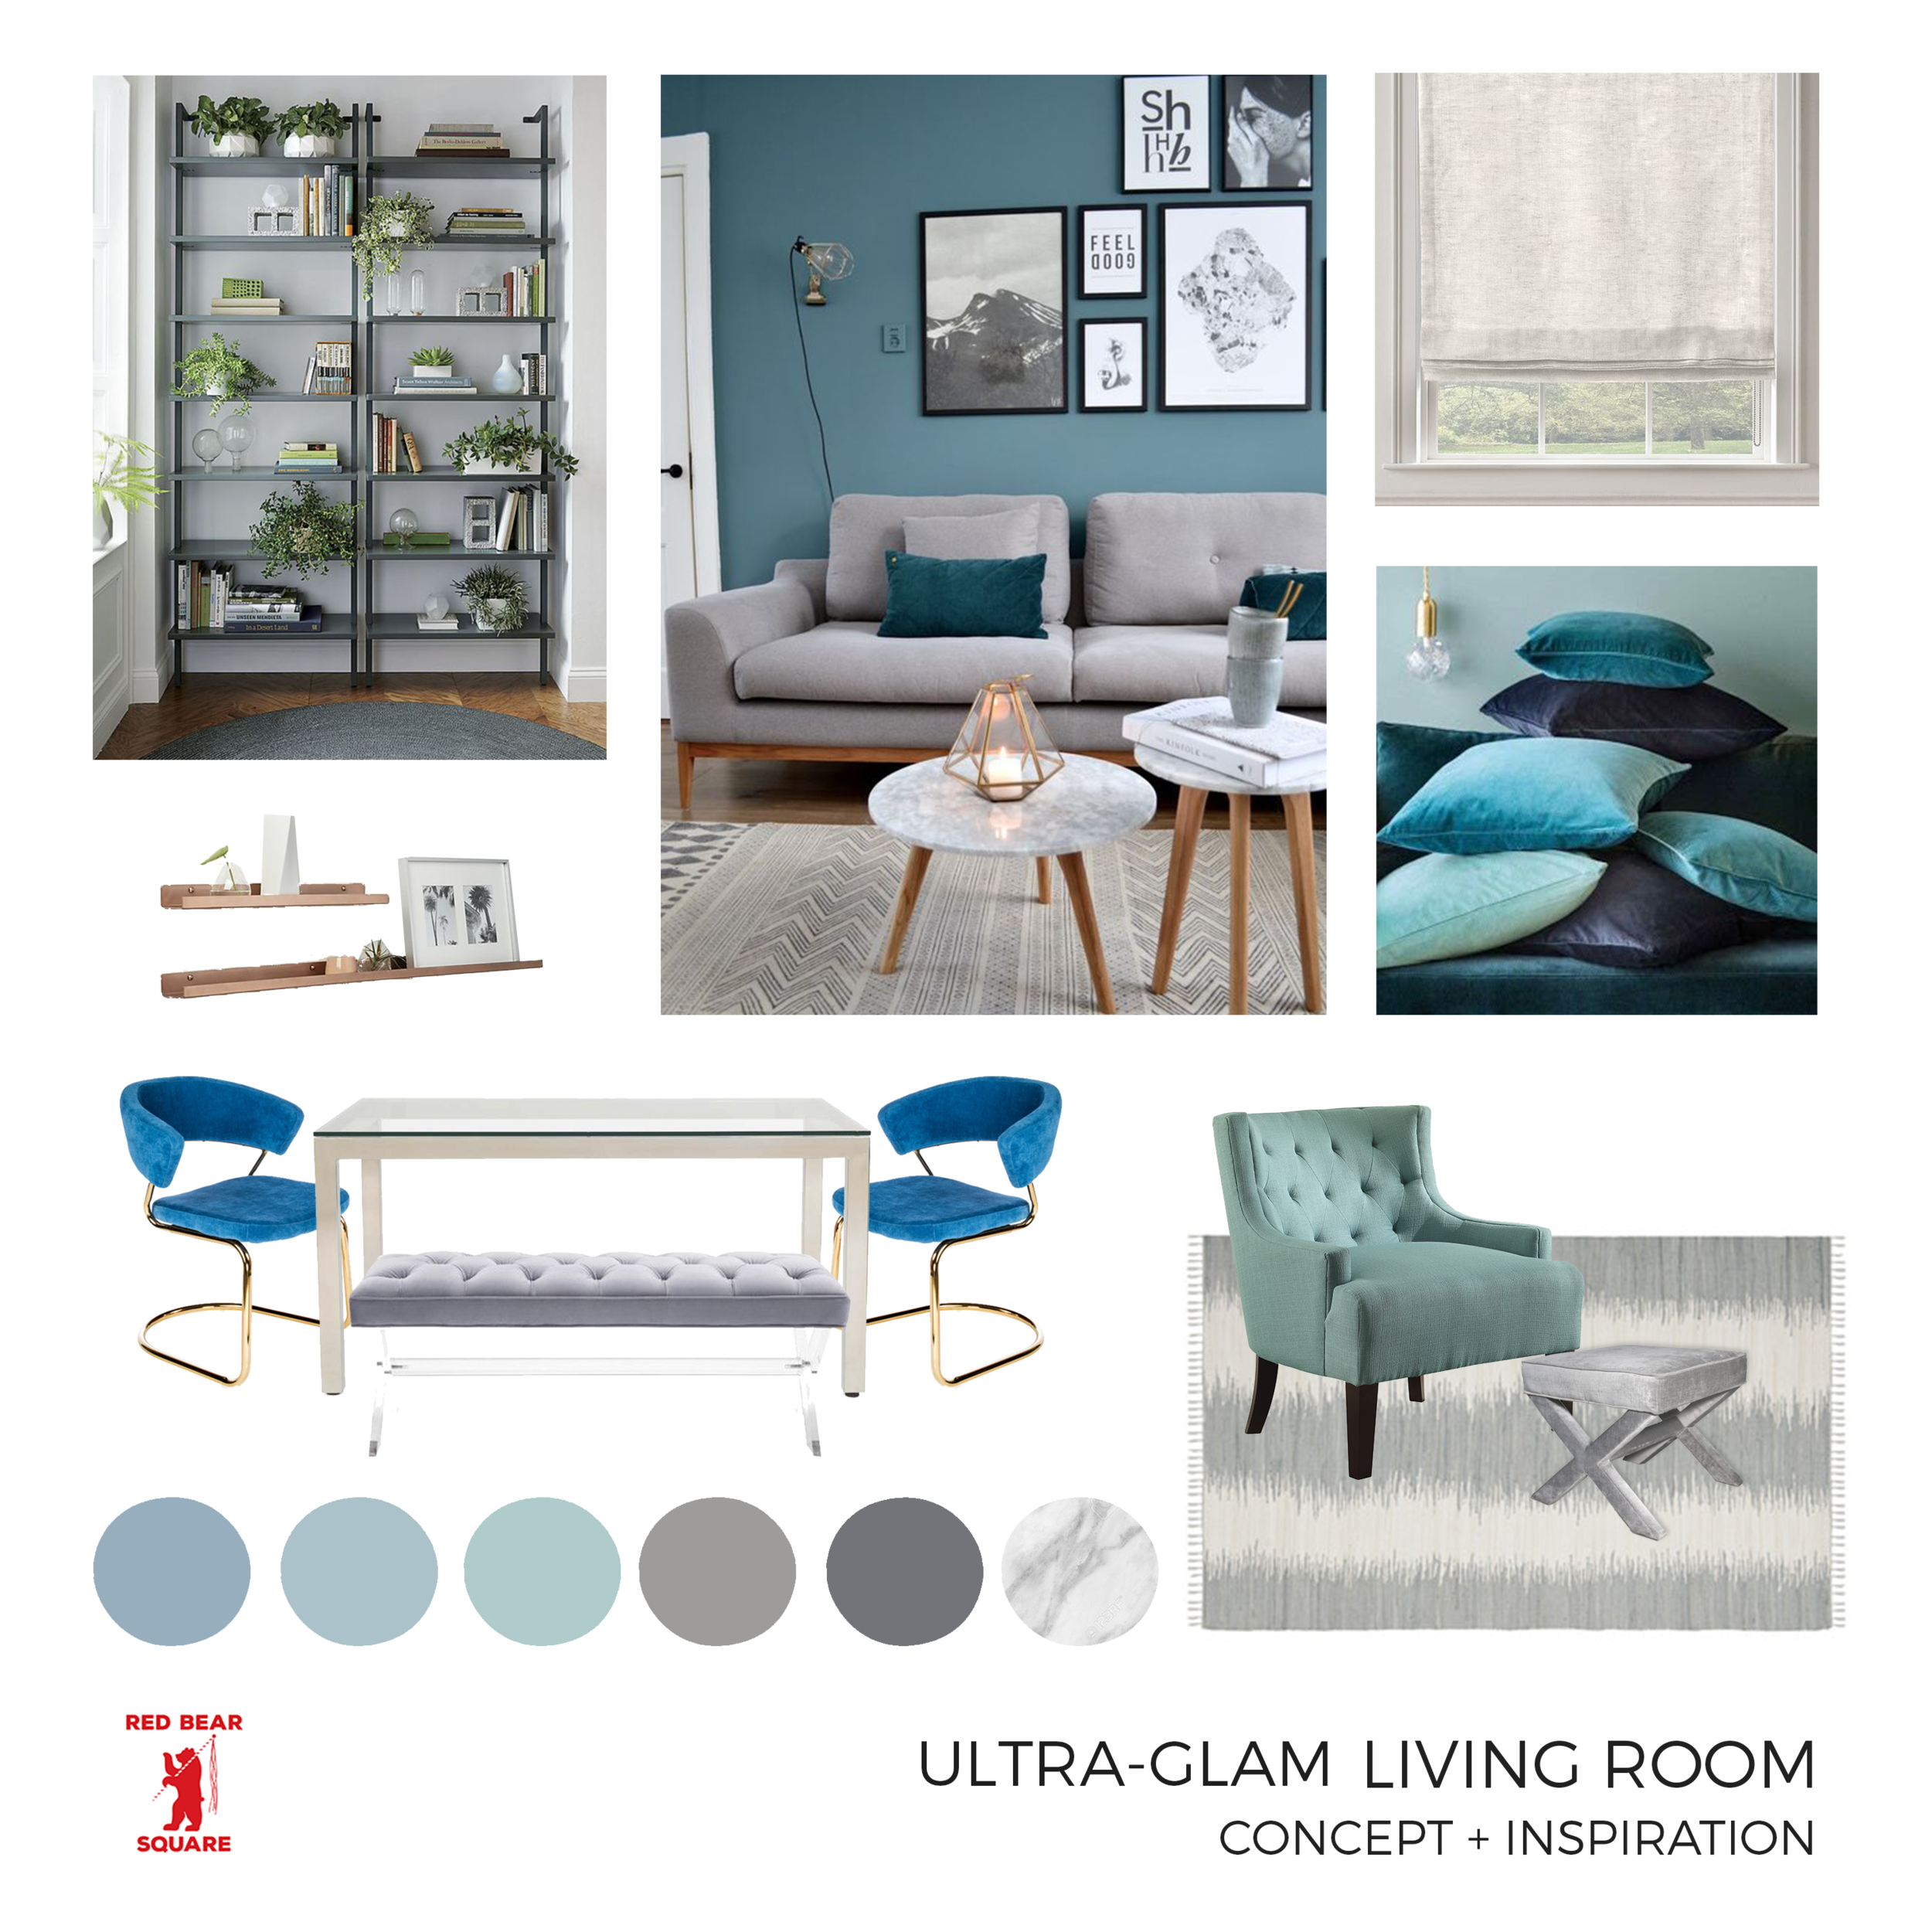 Concept Board for a UltraGlam Living and Dining Space